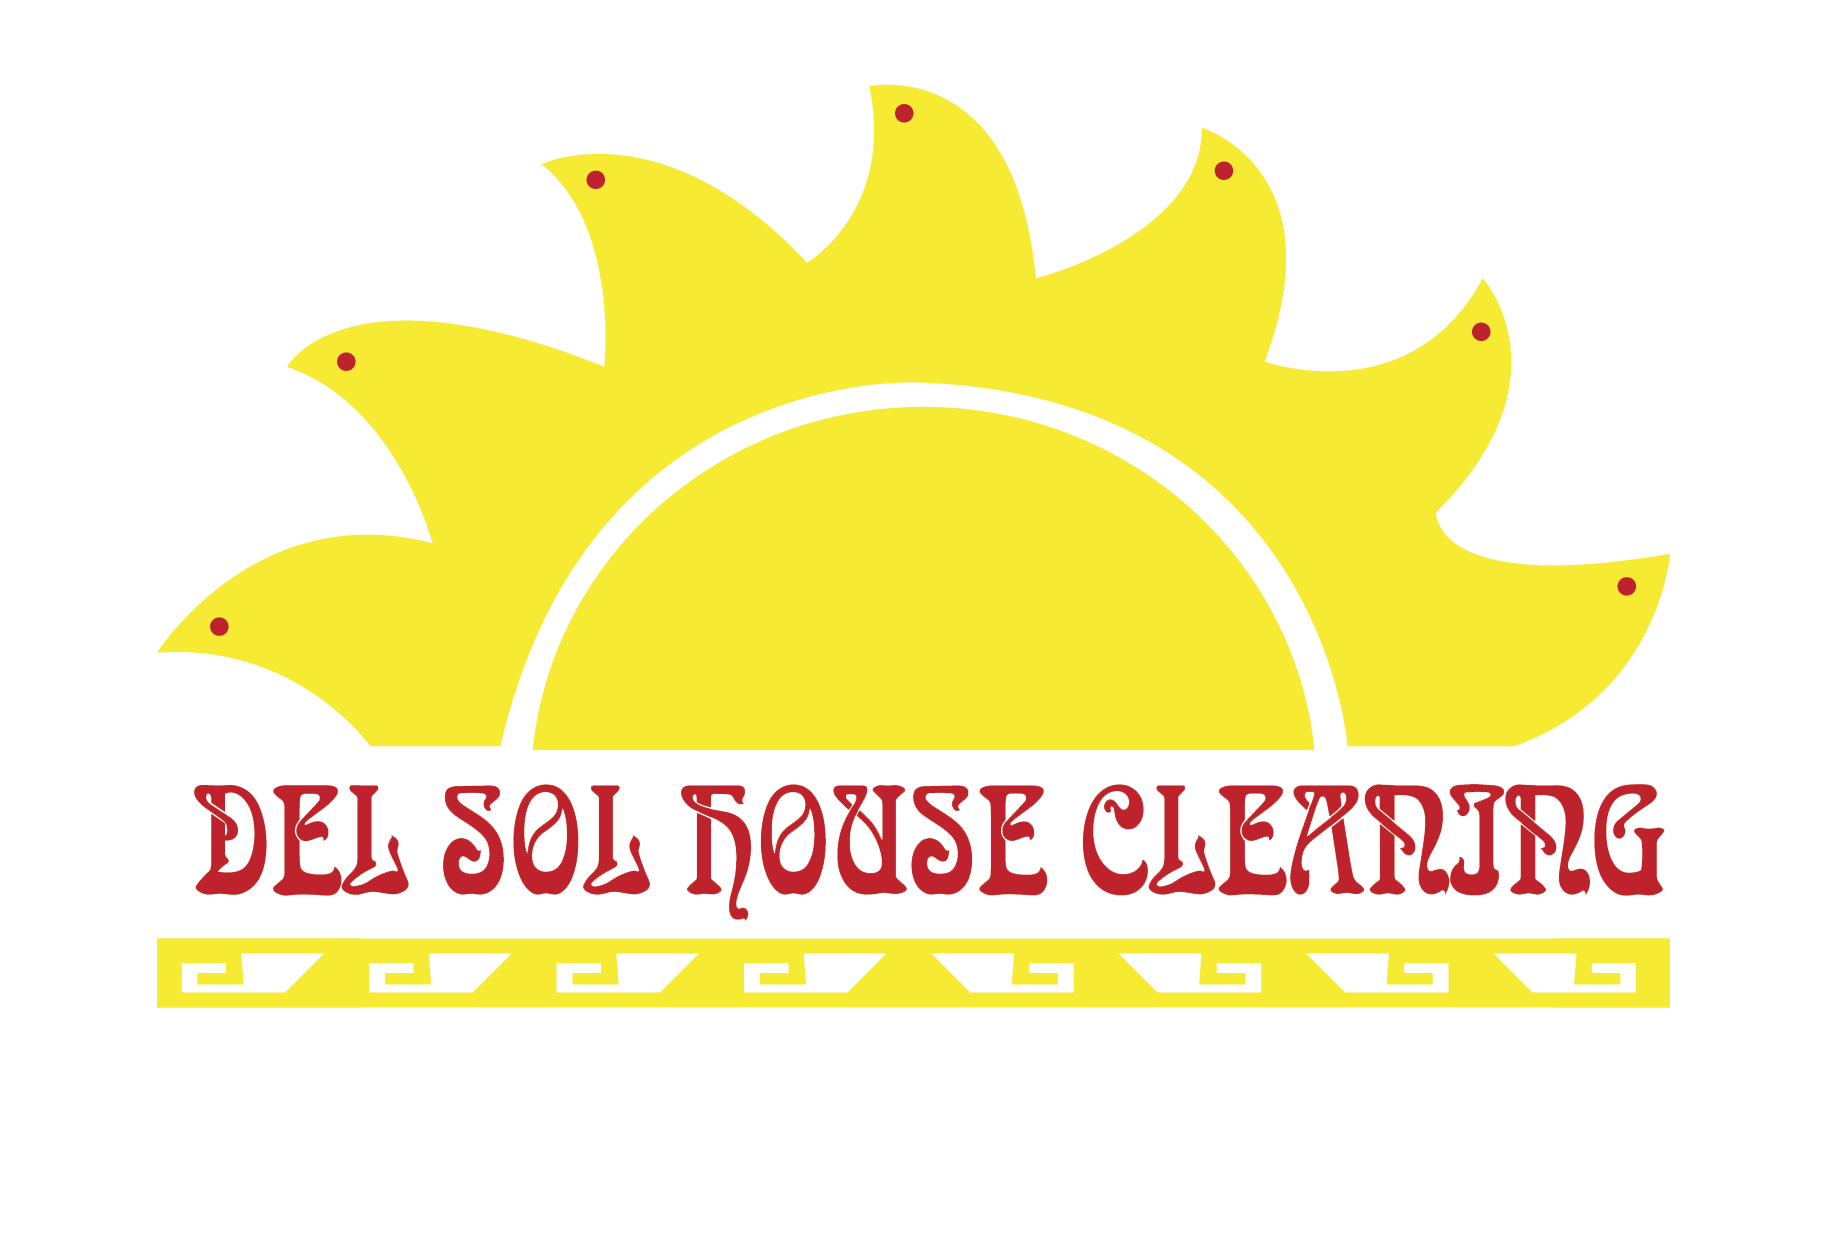 Del Sol House Cleaning